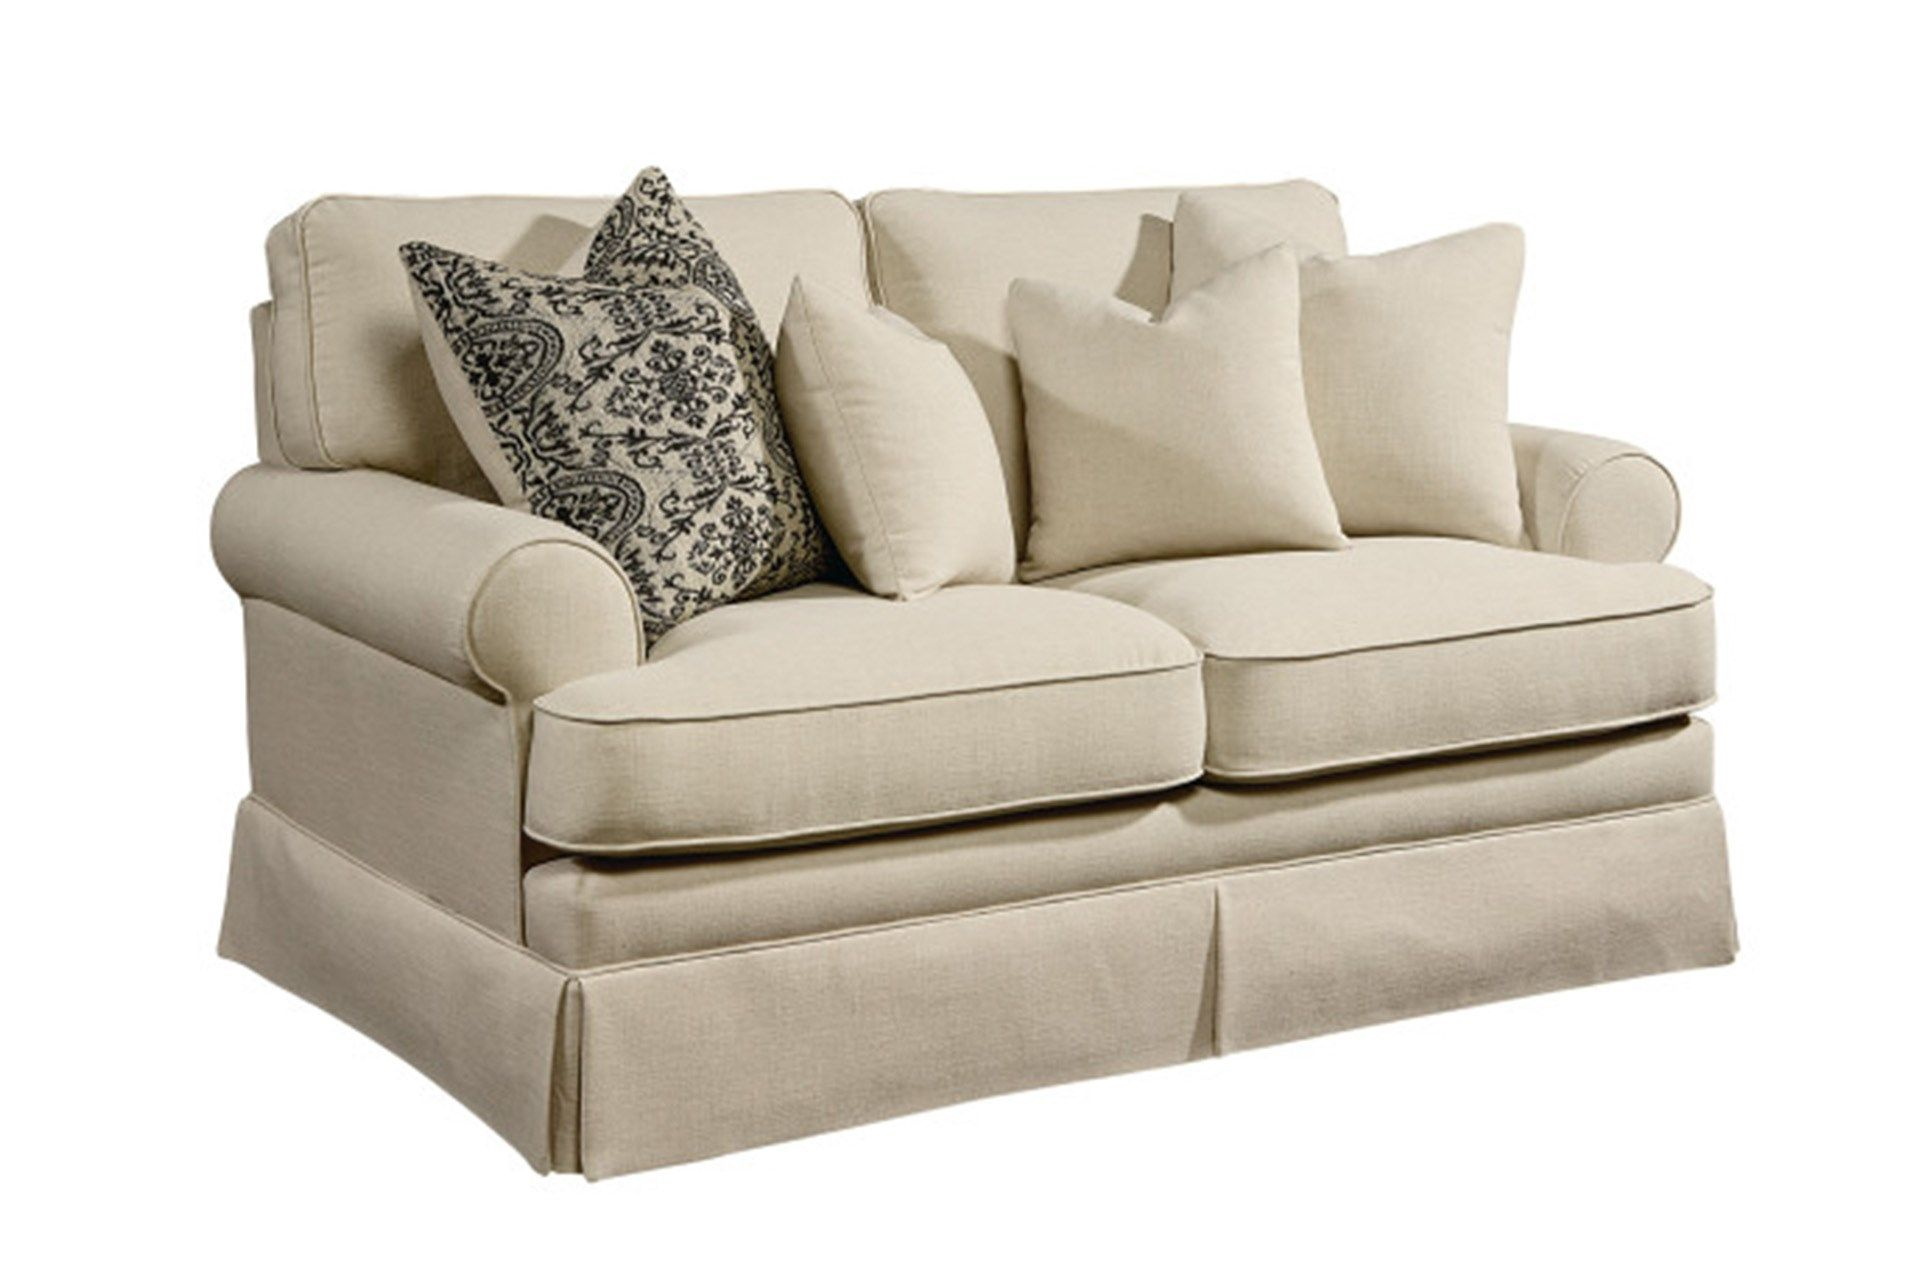 Shop for Magnolia Home Heritage Loveseat By Joanna Gaines